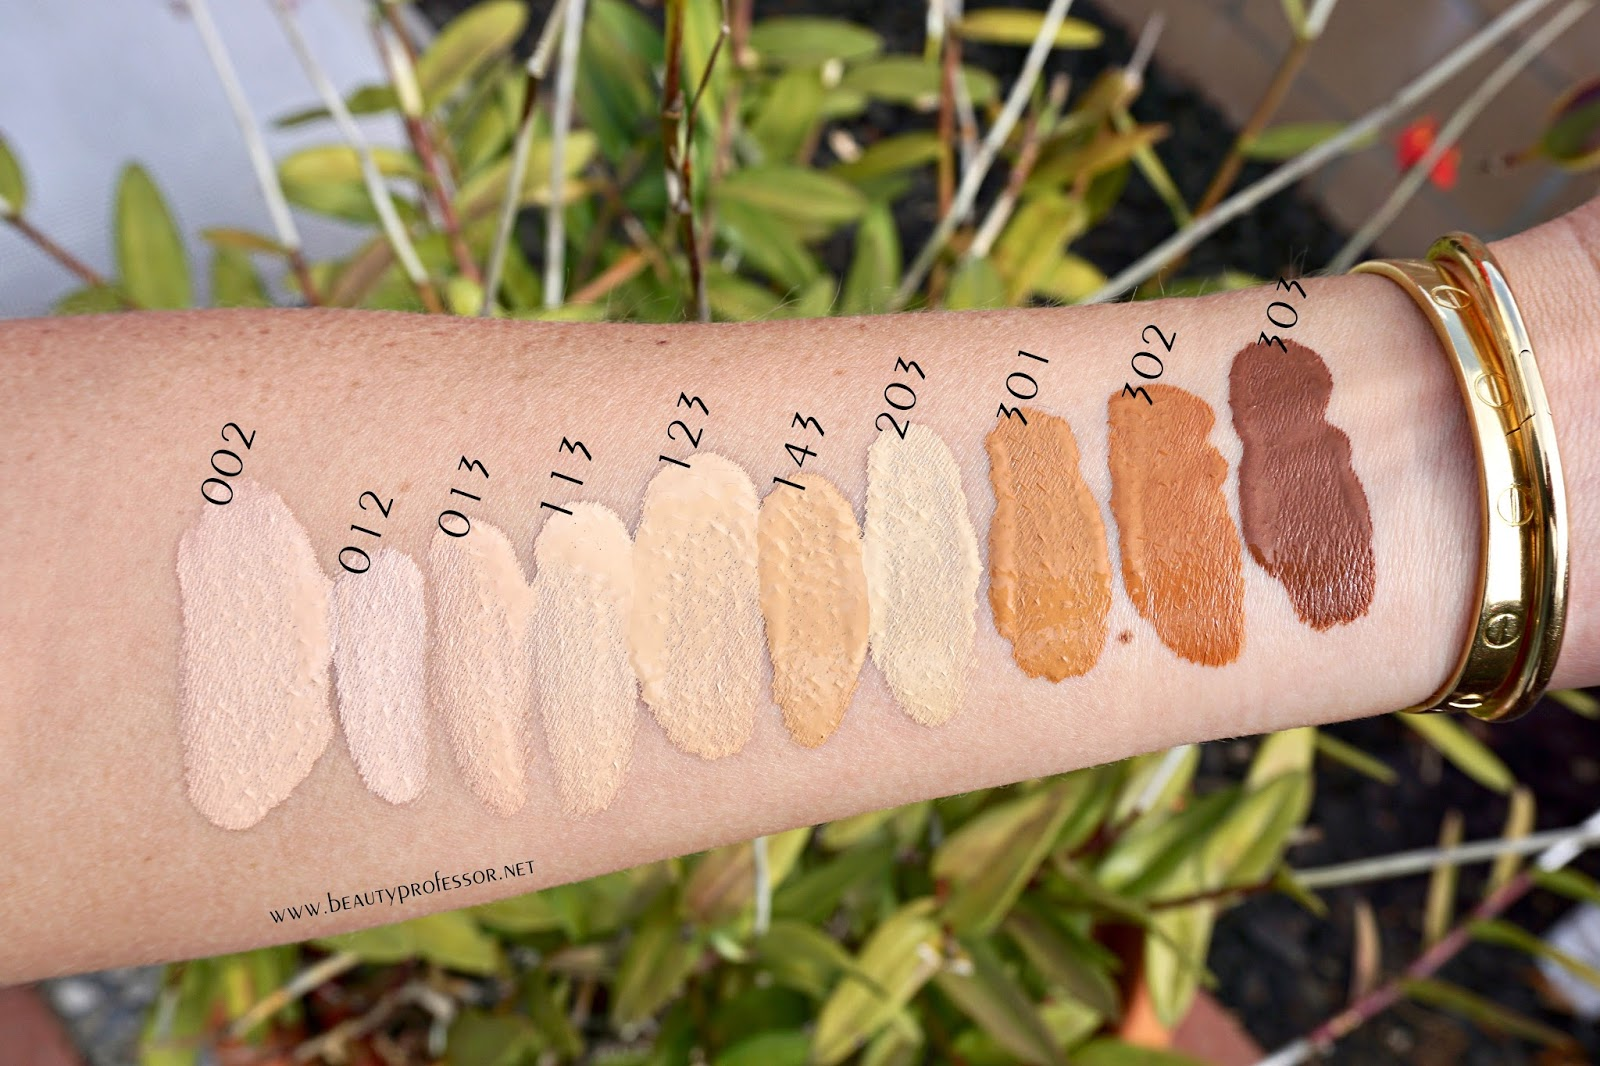 koh gen do aqua foundation new swatches